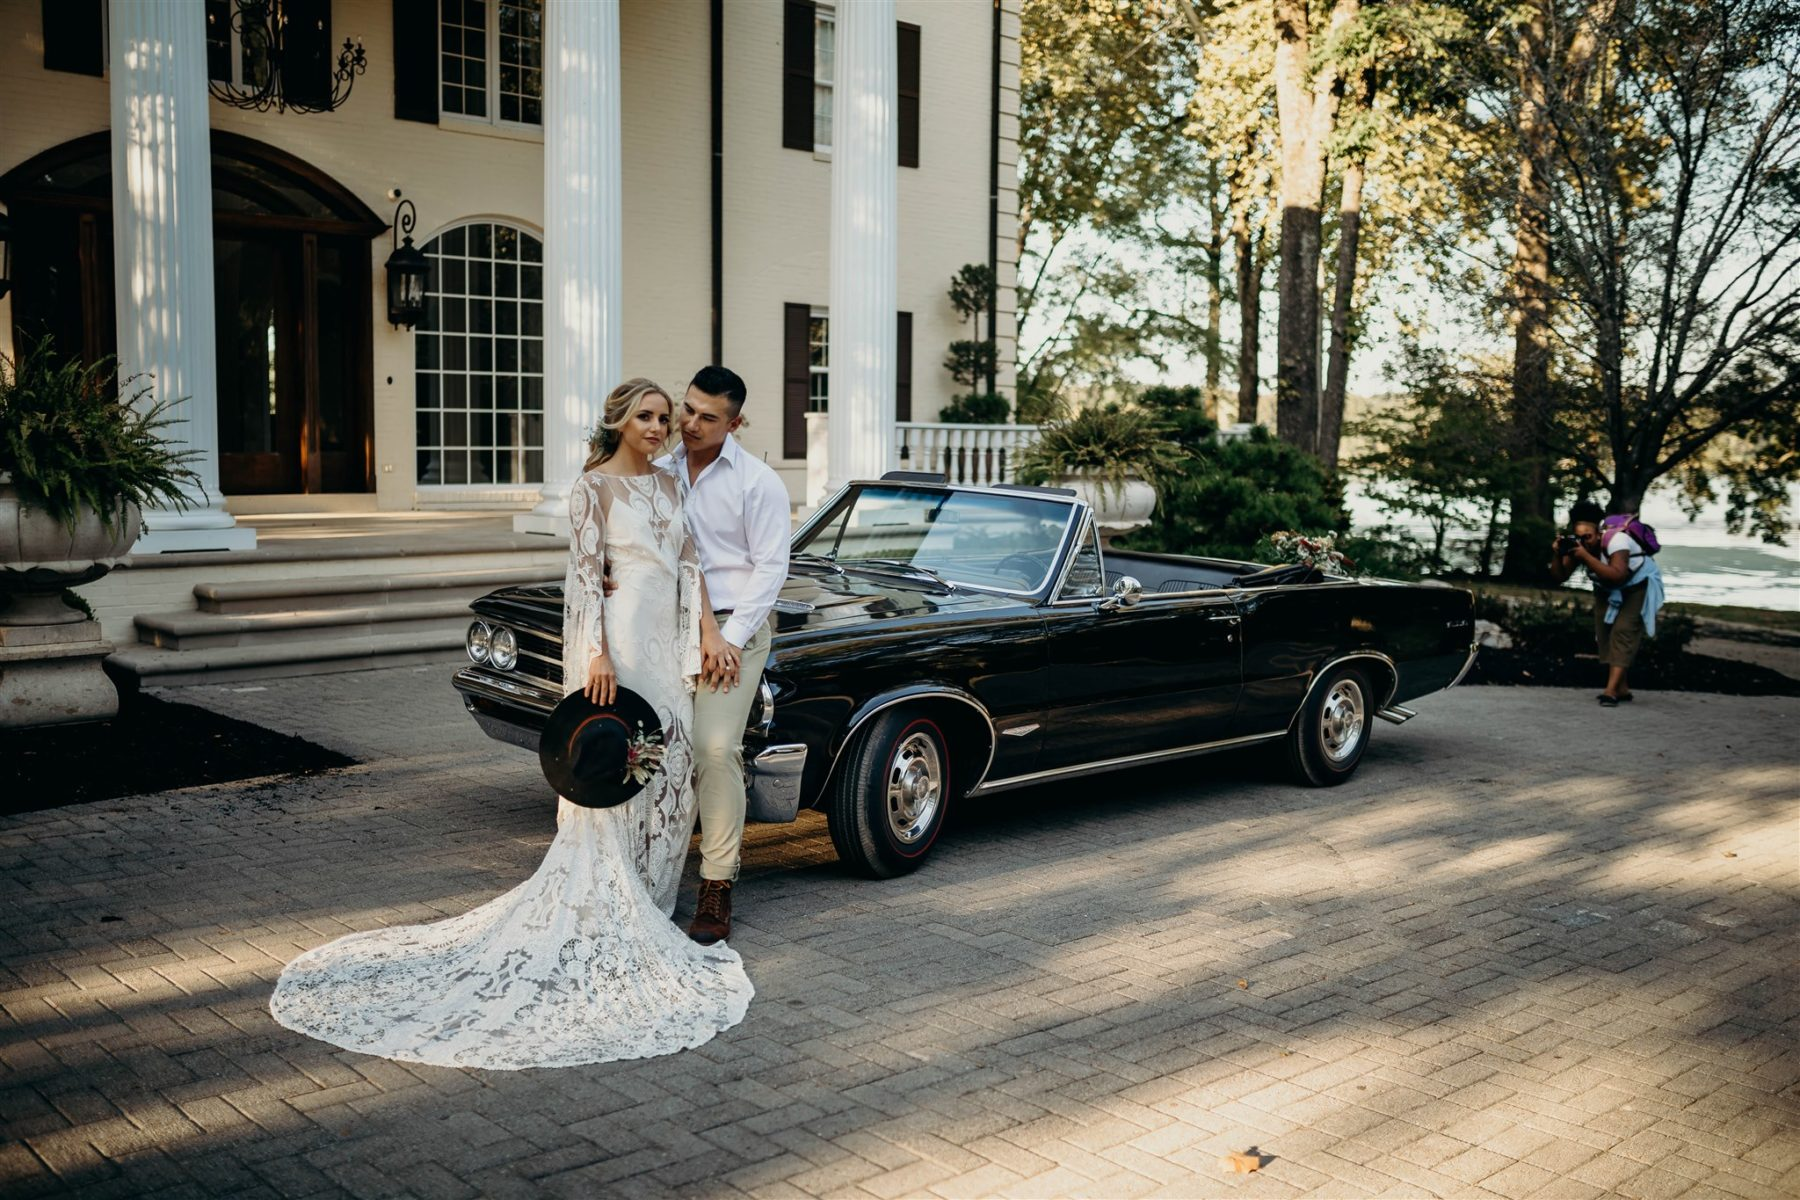 Vintage Wedding Car for Boho Winter Wedding Styled Shoot